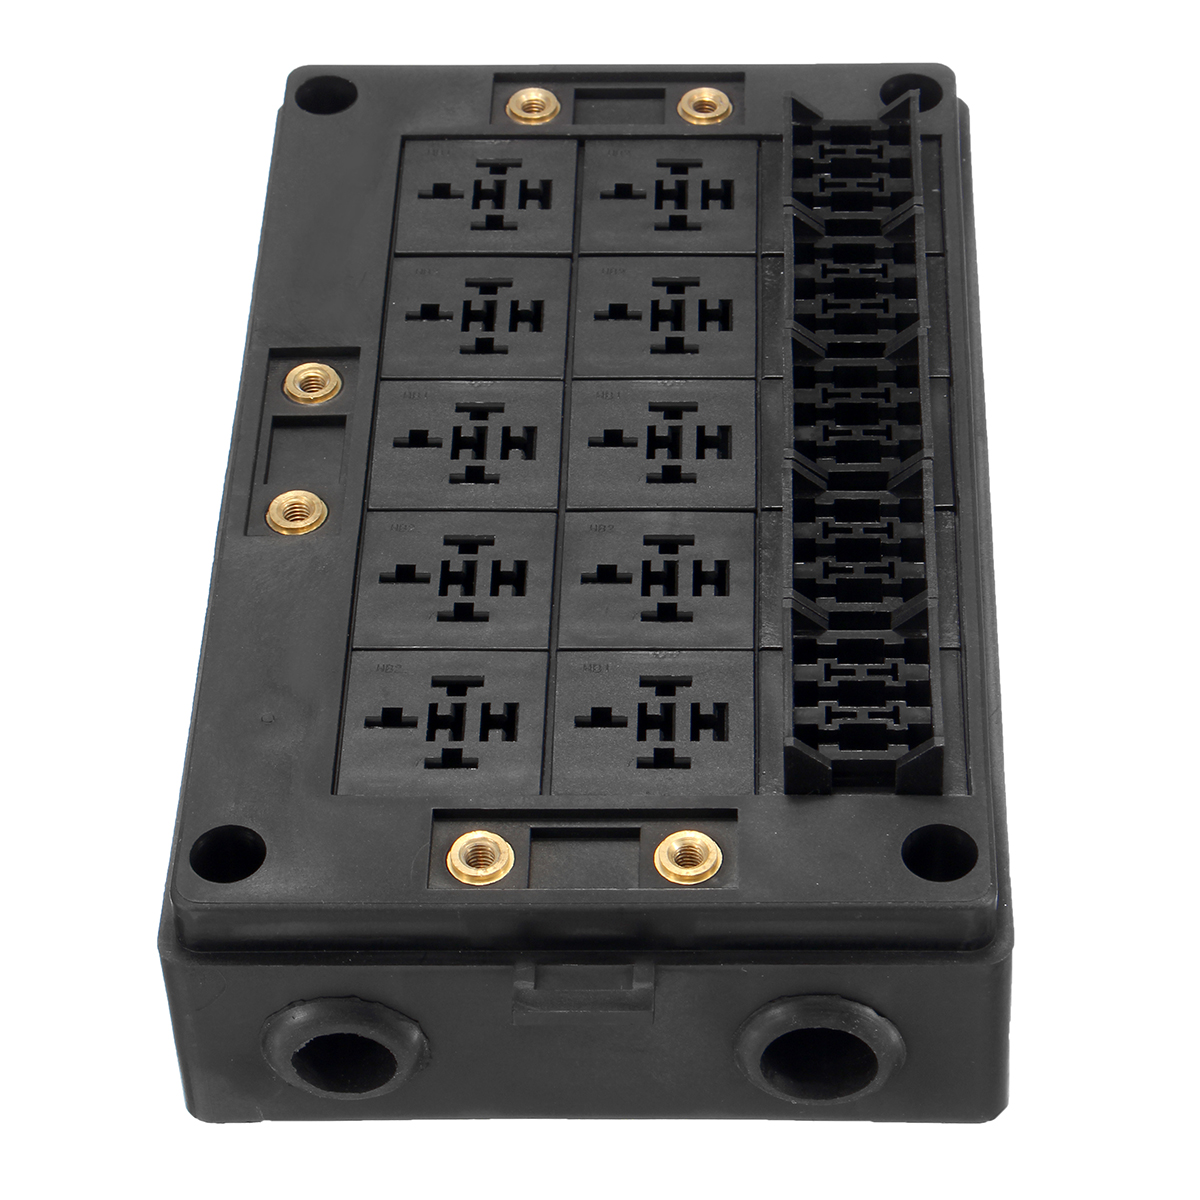 18-Way Fuse Relay Box Holder Block Circuit Protector Terminals Replacement  Part for Automotive Marine | Alexnld.com | Relay Holder Fuse Box Terminals |  | Alexnld.com